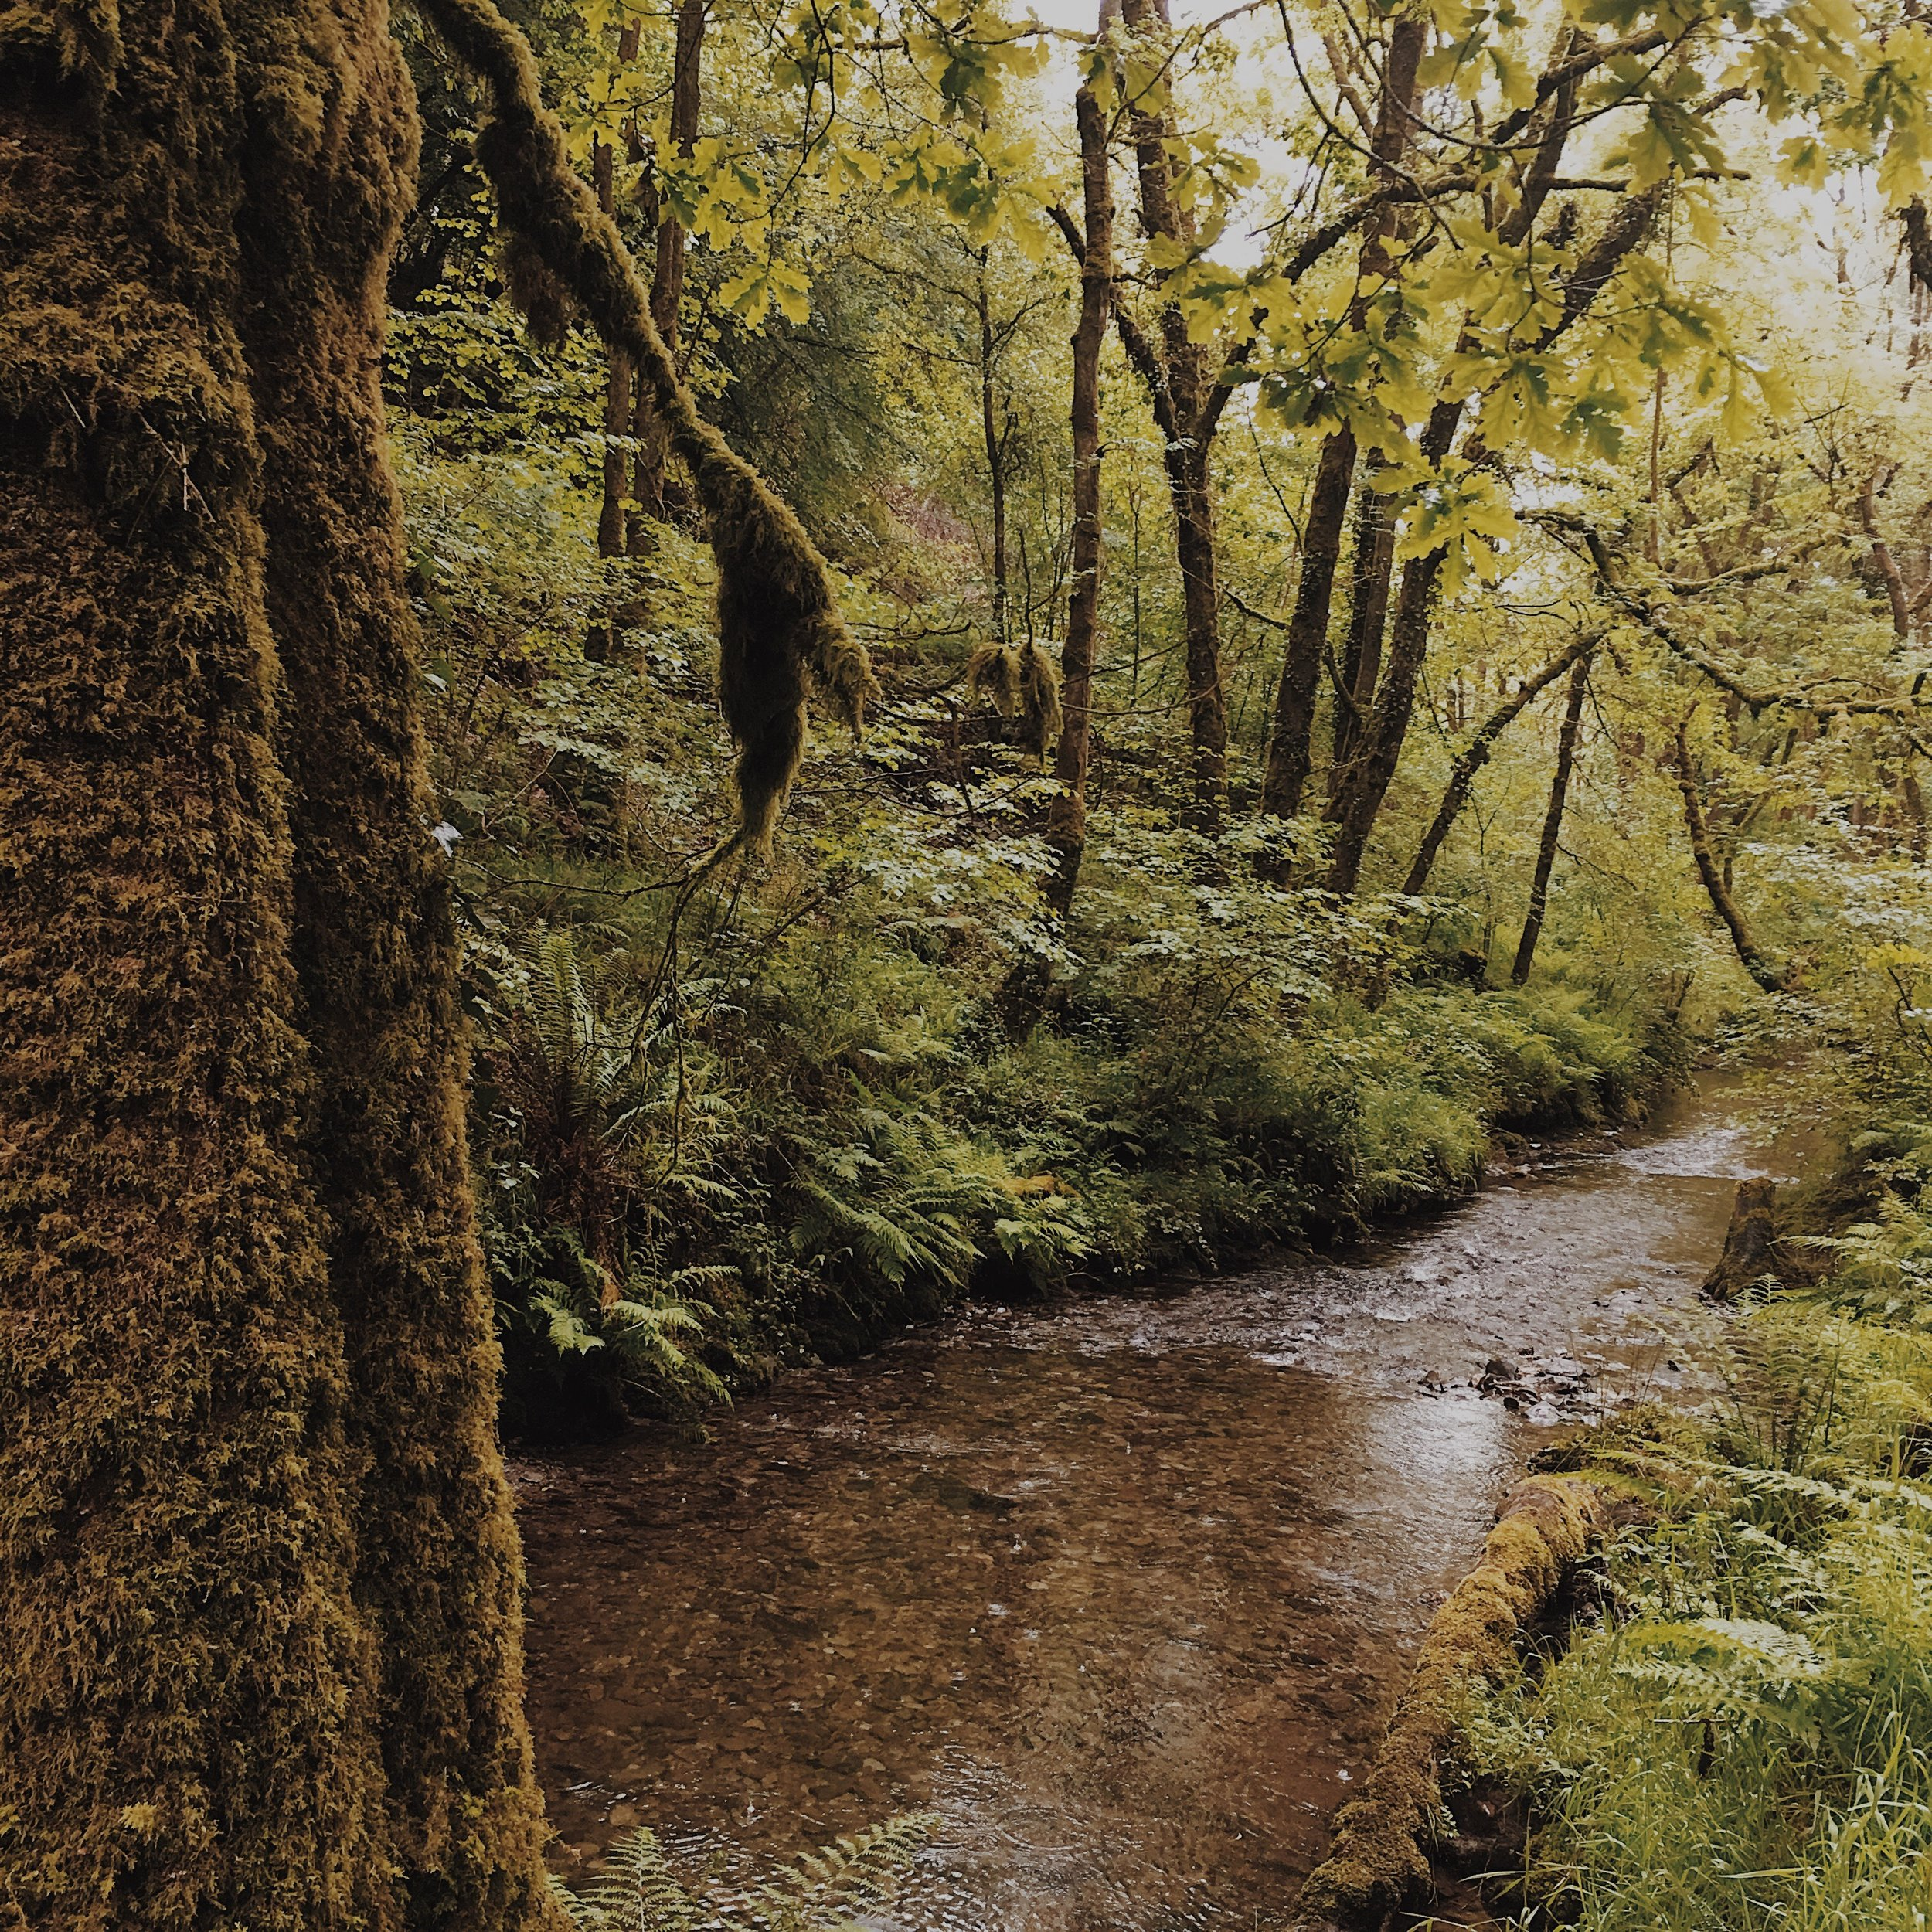 The Afon Gorlech switches back through the forest and you follow it along as you walk through the trees.